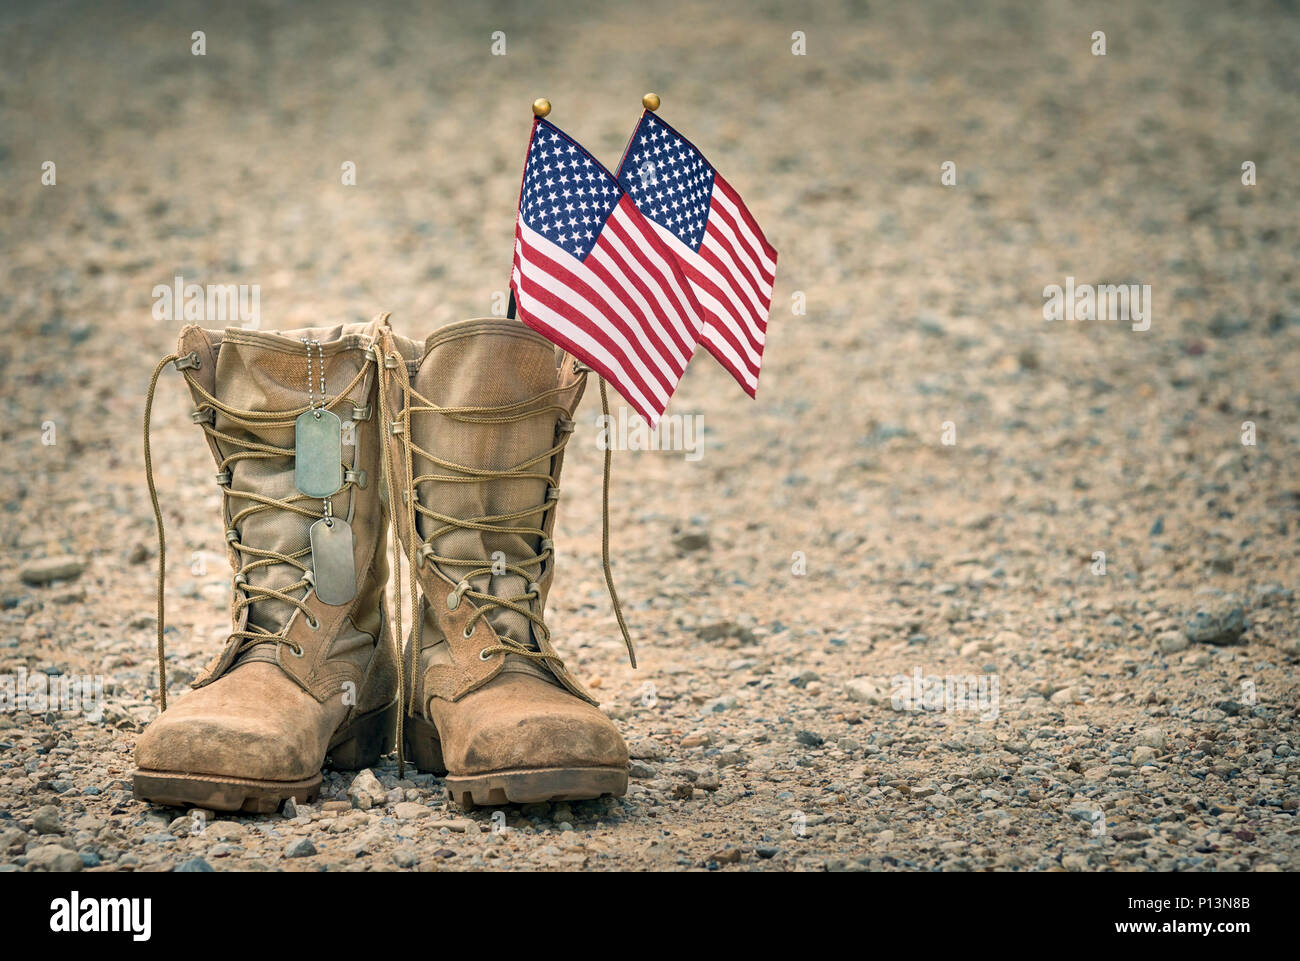 0d70d7cbd1a2 Old military combat boots with dog tags and two small American flags. Rocky  gravel background